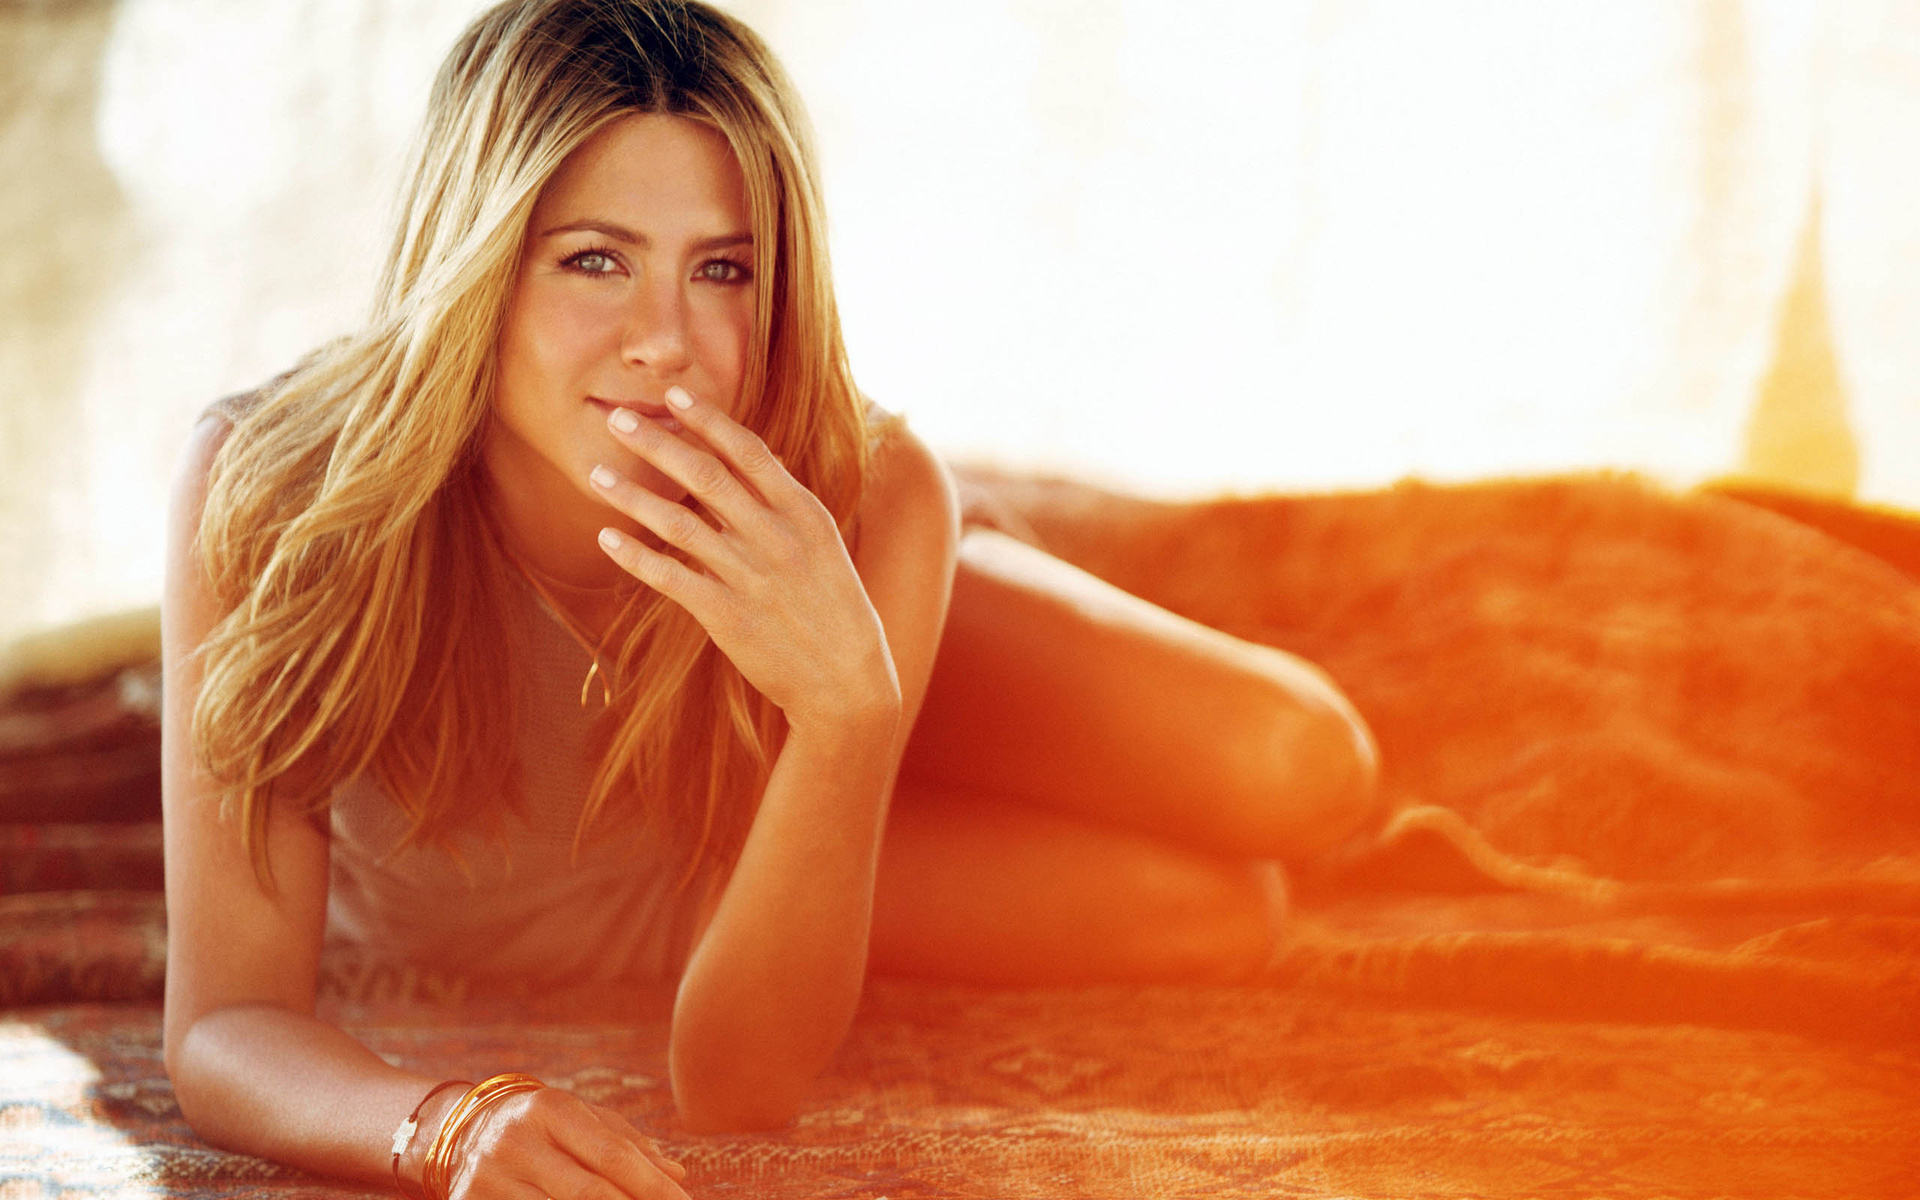 aniston as Jennifer